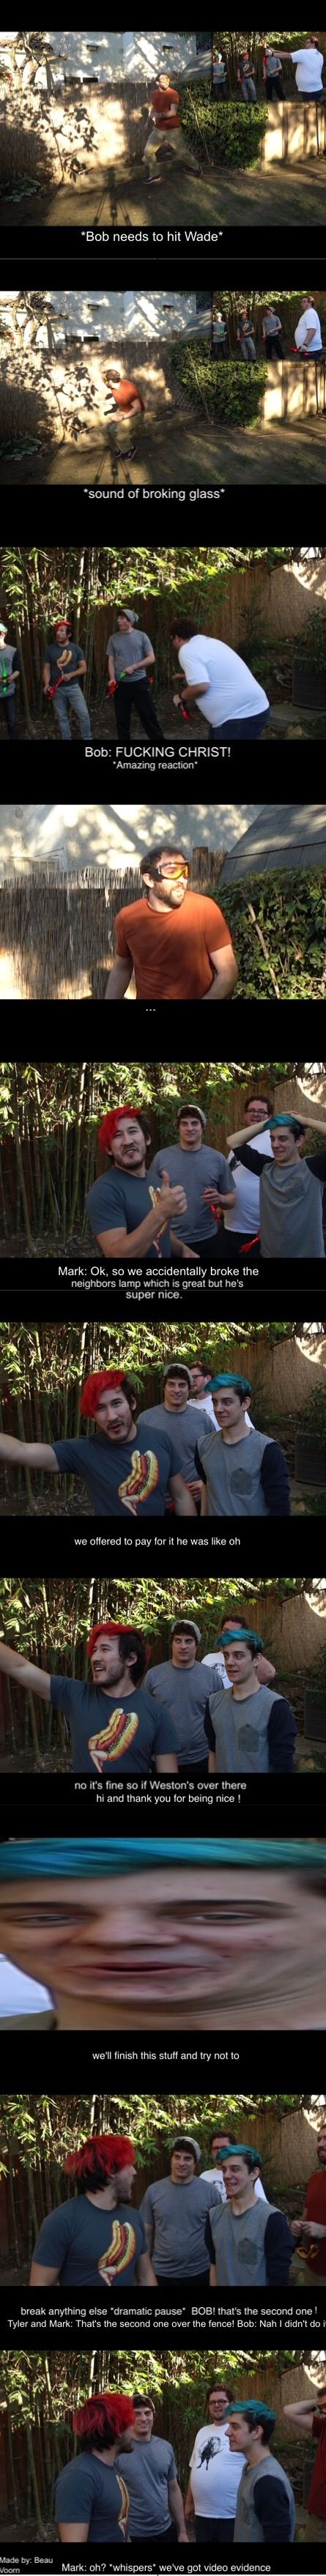 Markiplier/Mark, CrankGamePlays/Ethan, LordMinion777/Wade, Muyskerm/Bob and Tyler - Part 1 made by: Beau Voorn - WE BROKE SOMETHING!! | Arrow Doge Challenge #3